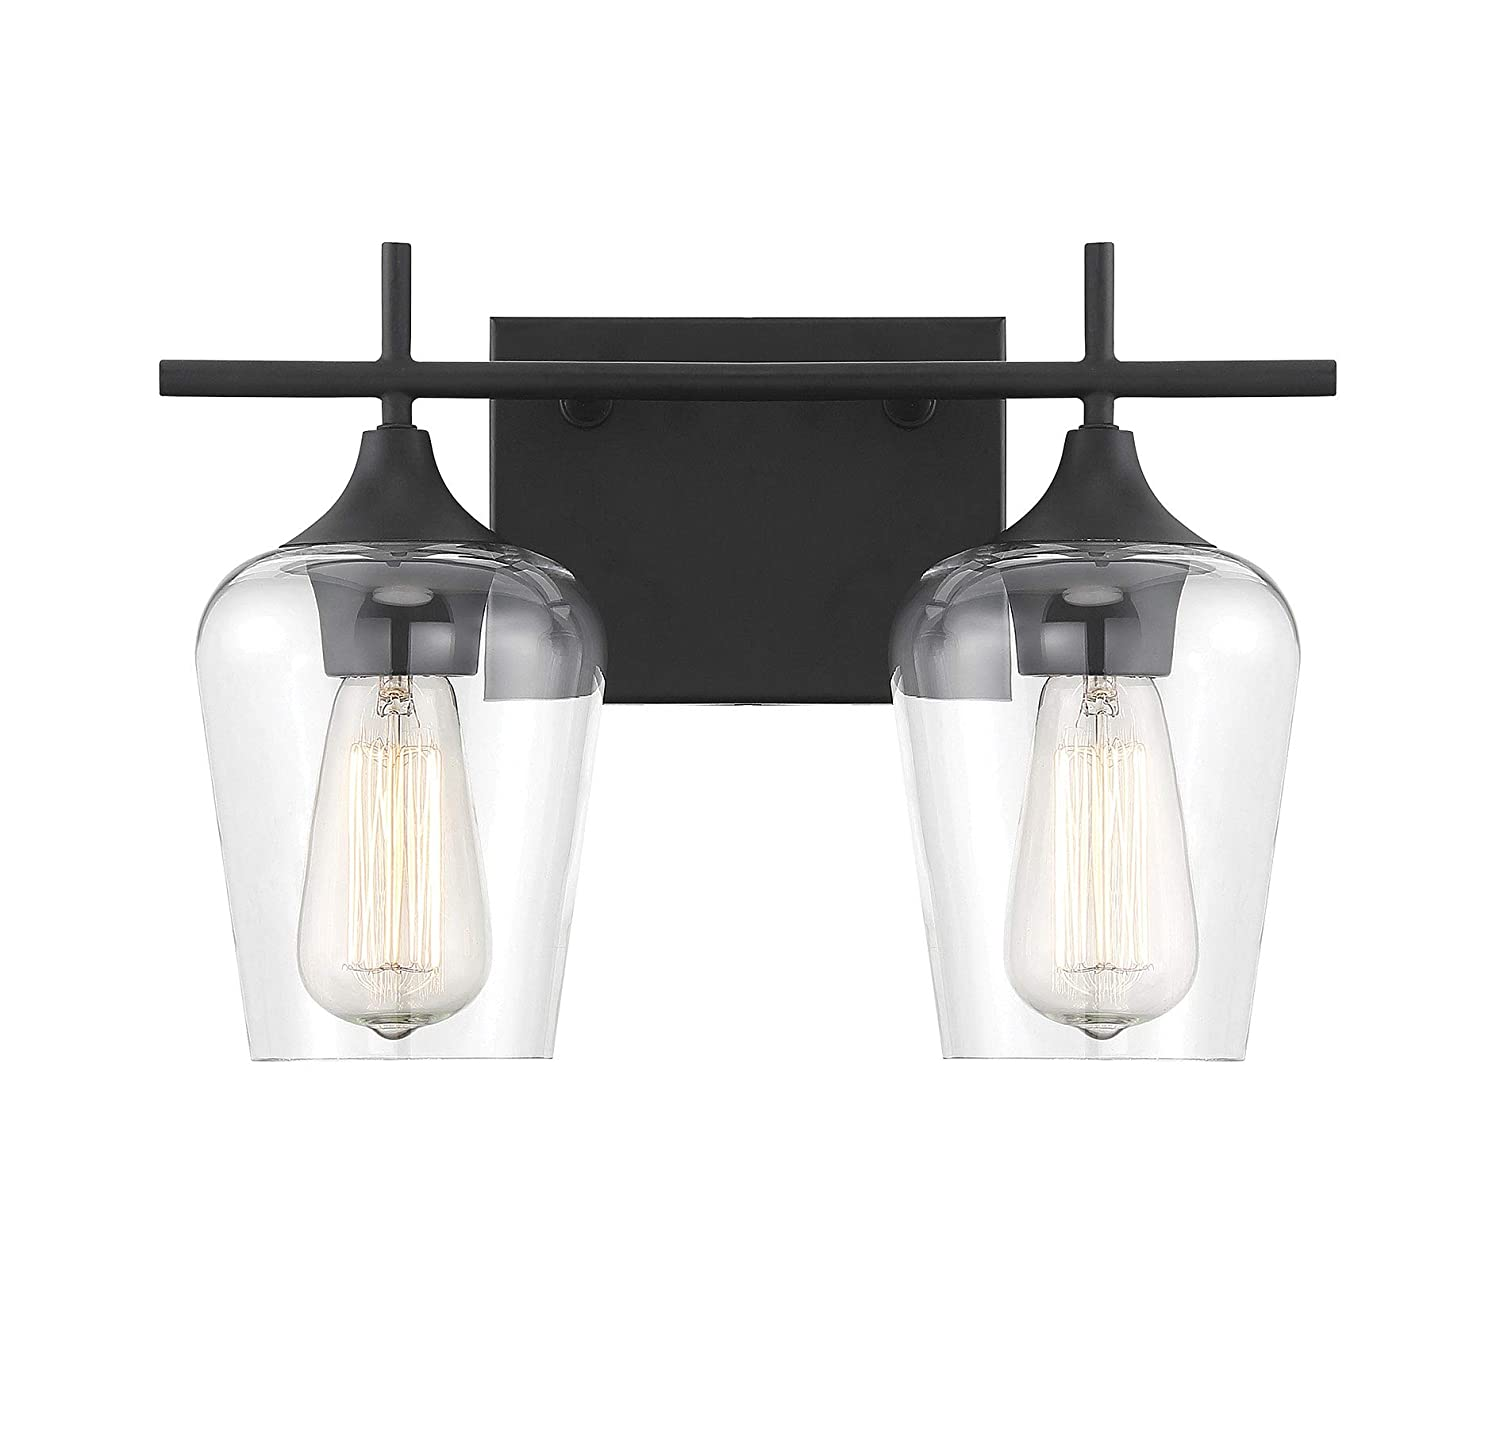 AFX Lighting TH8050030LSN Frosted Clear Polycarbonate LED Track Head Light Fixture Satin Nickel